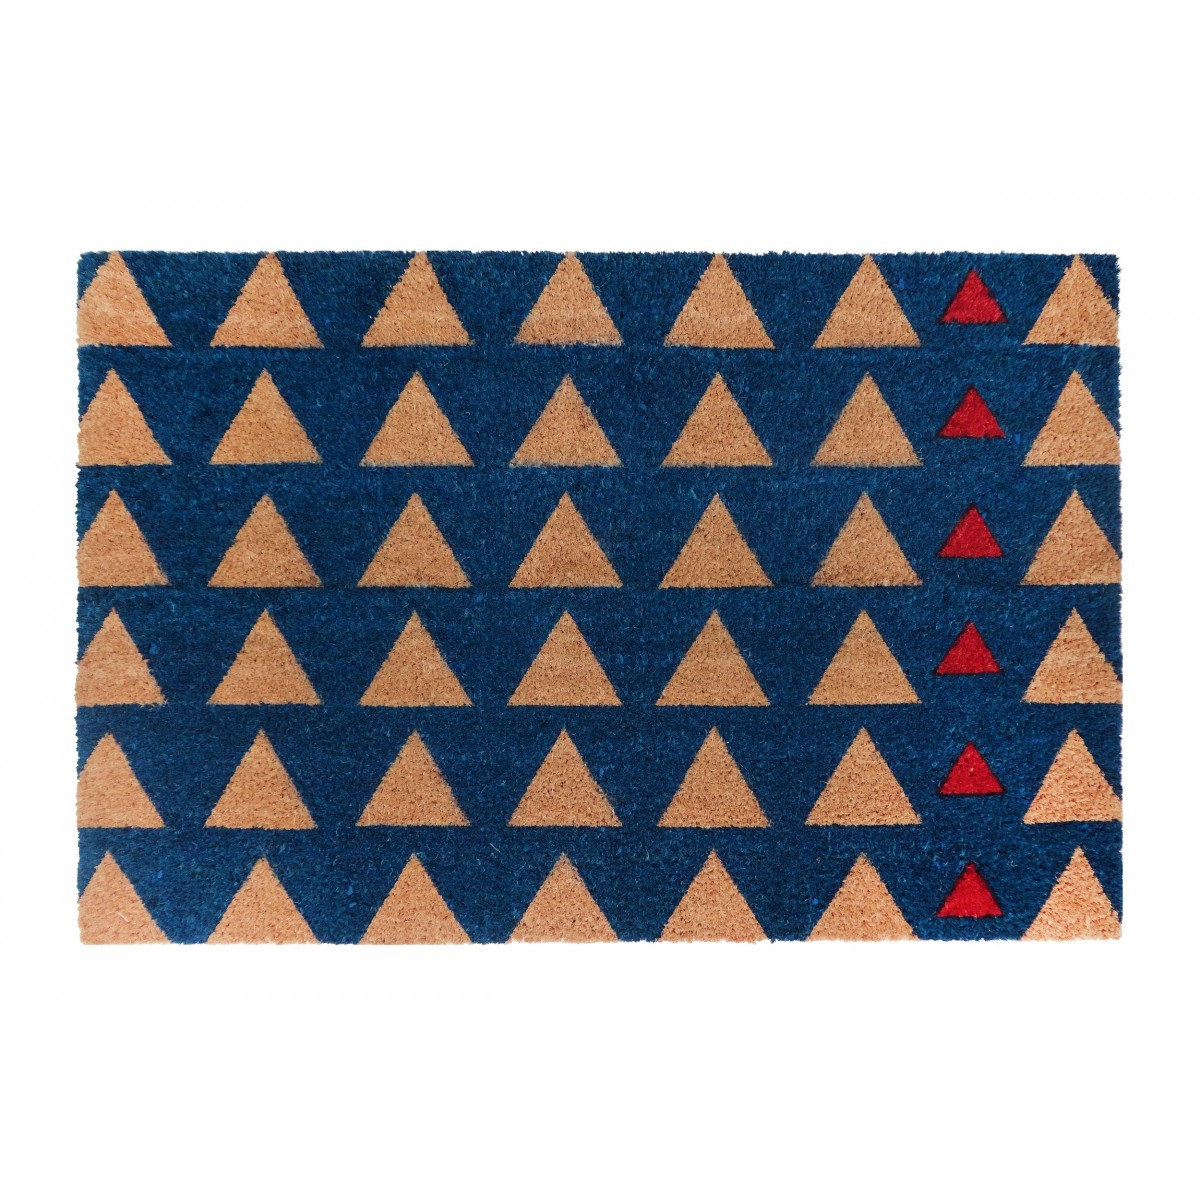 PVC Backed Coir Door Mat, Triad